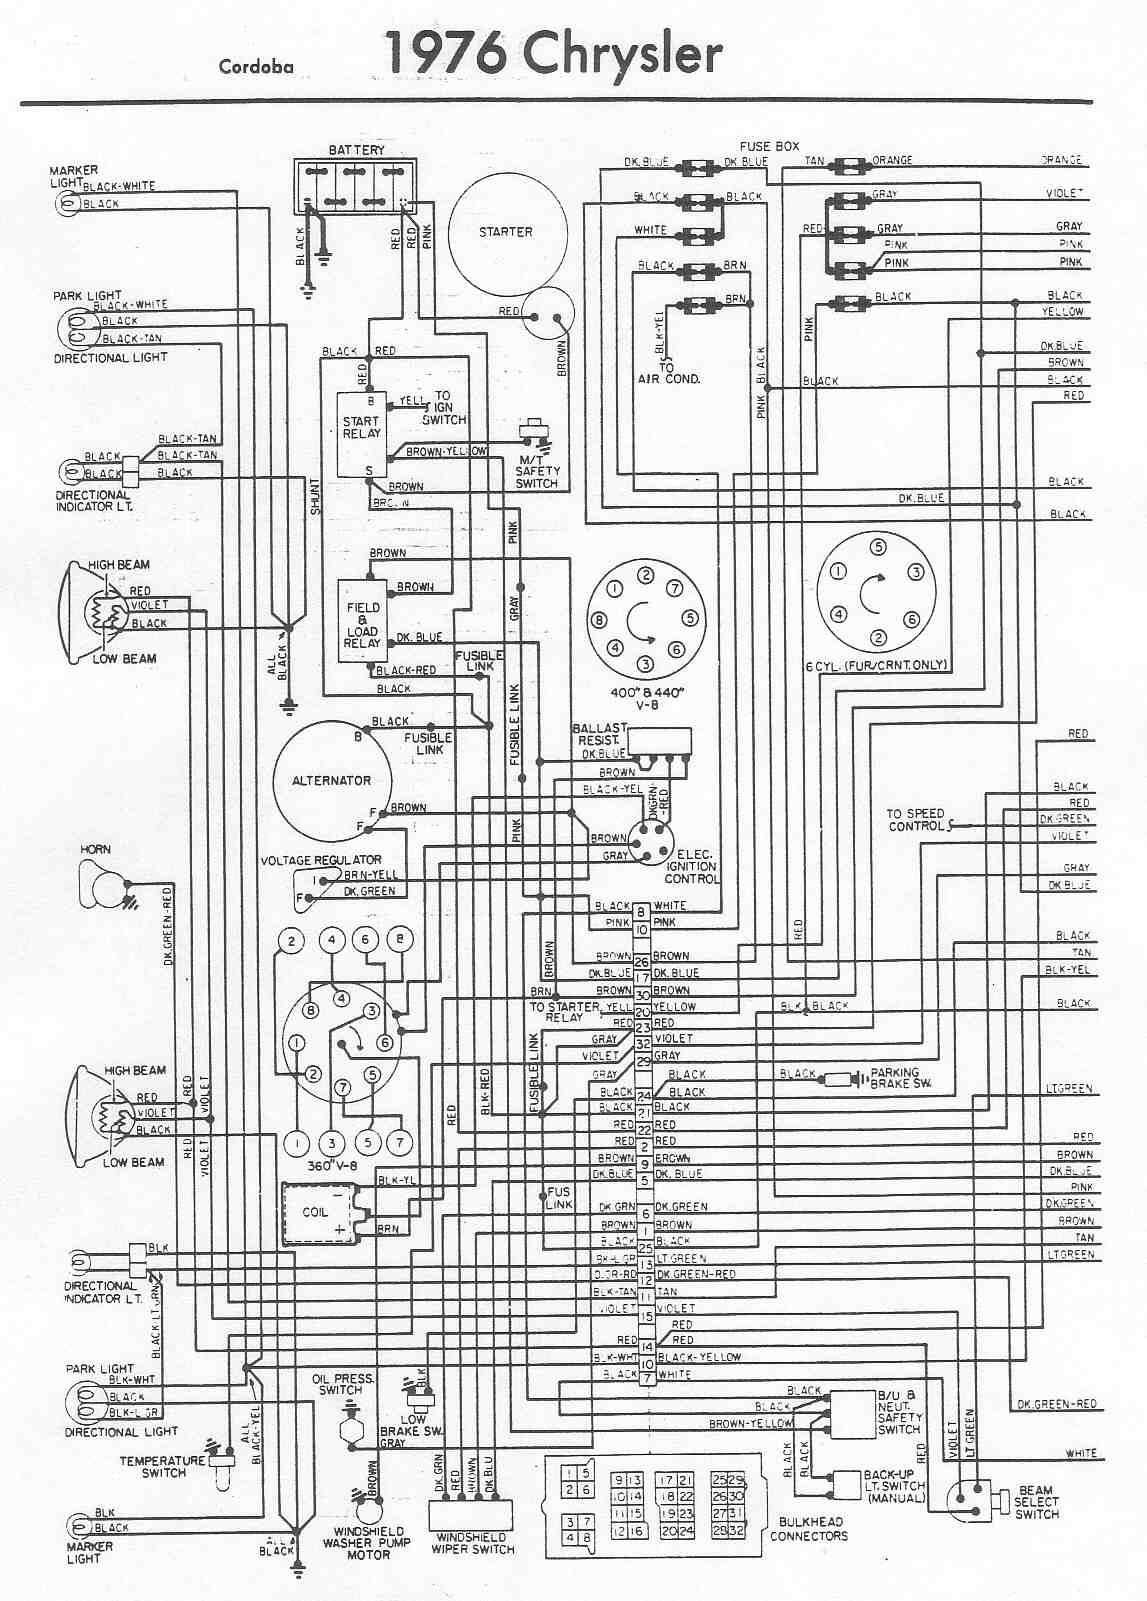 2006 chrysler 300 wiring diagram with diode chrysler - car manuals, wiring diagrams pdf & fault codes #4